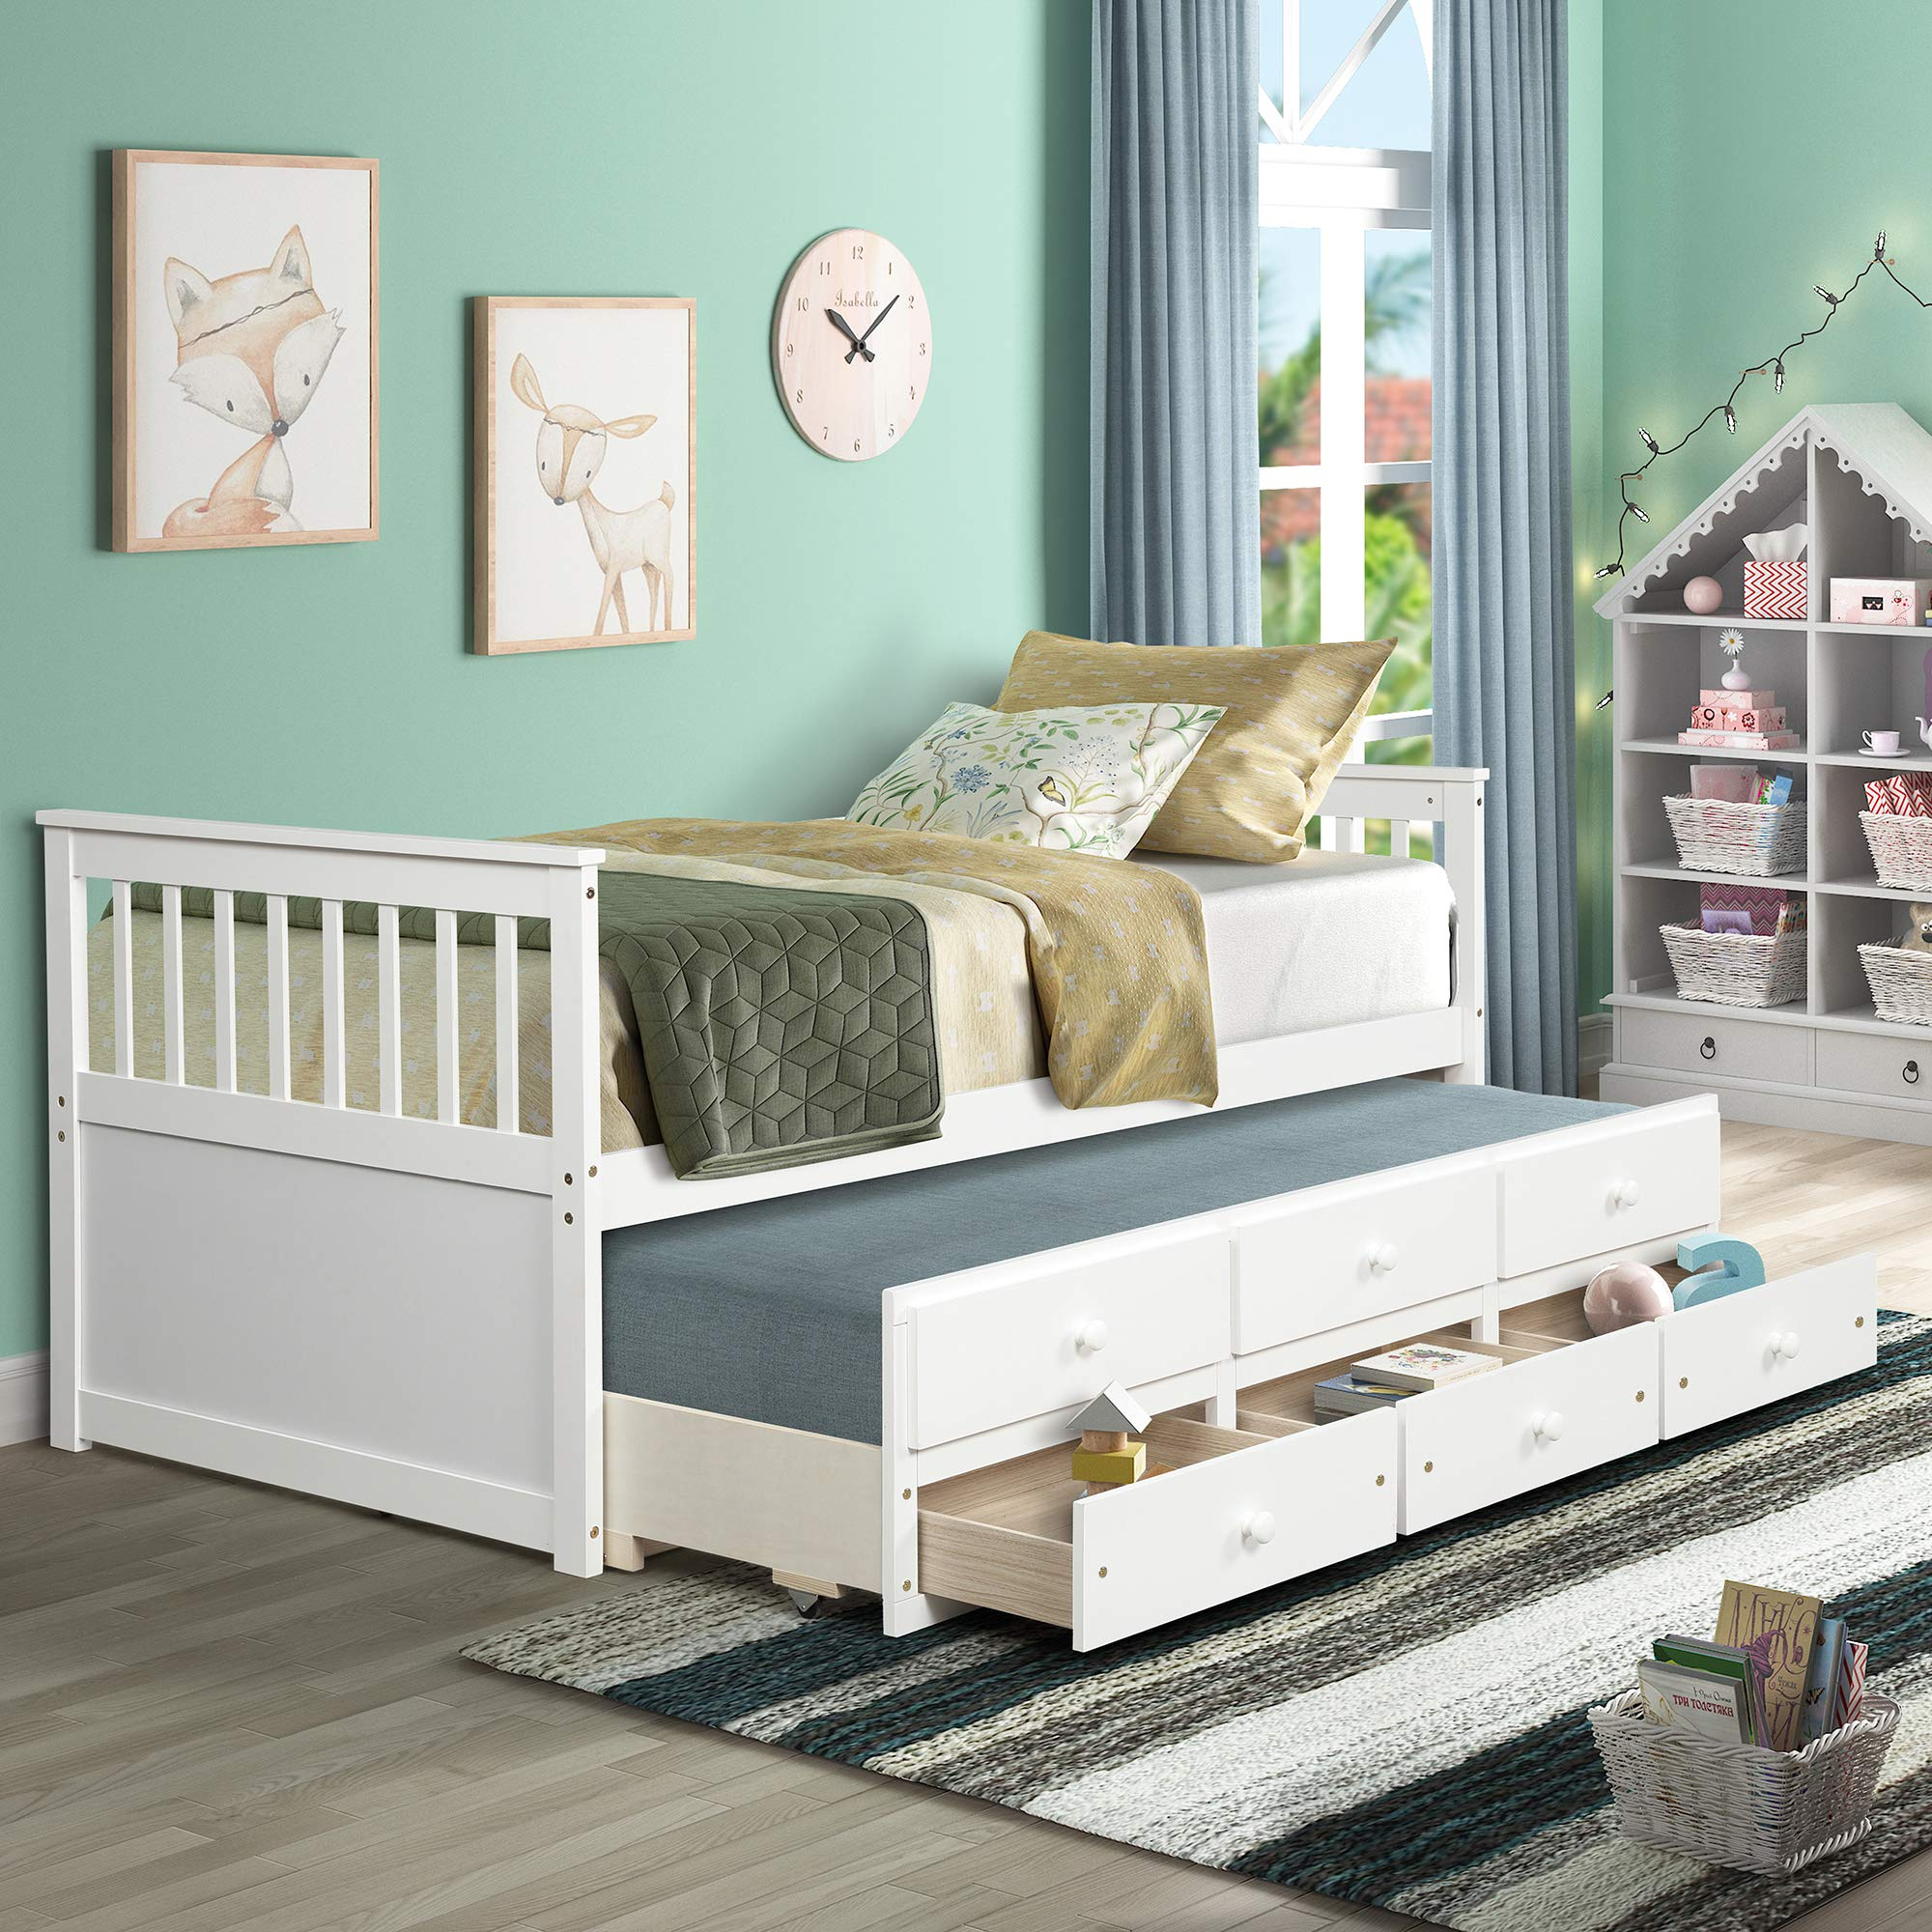 LZ LEISURE ZONE Captain's Bed Twin Daybed with Trundle Bed and Storage Drawers (White, Twin)